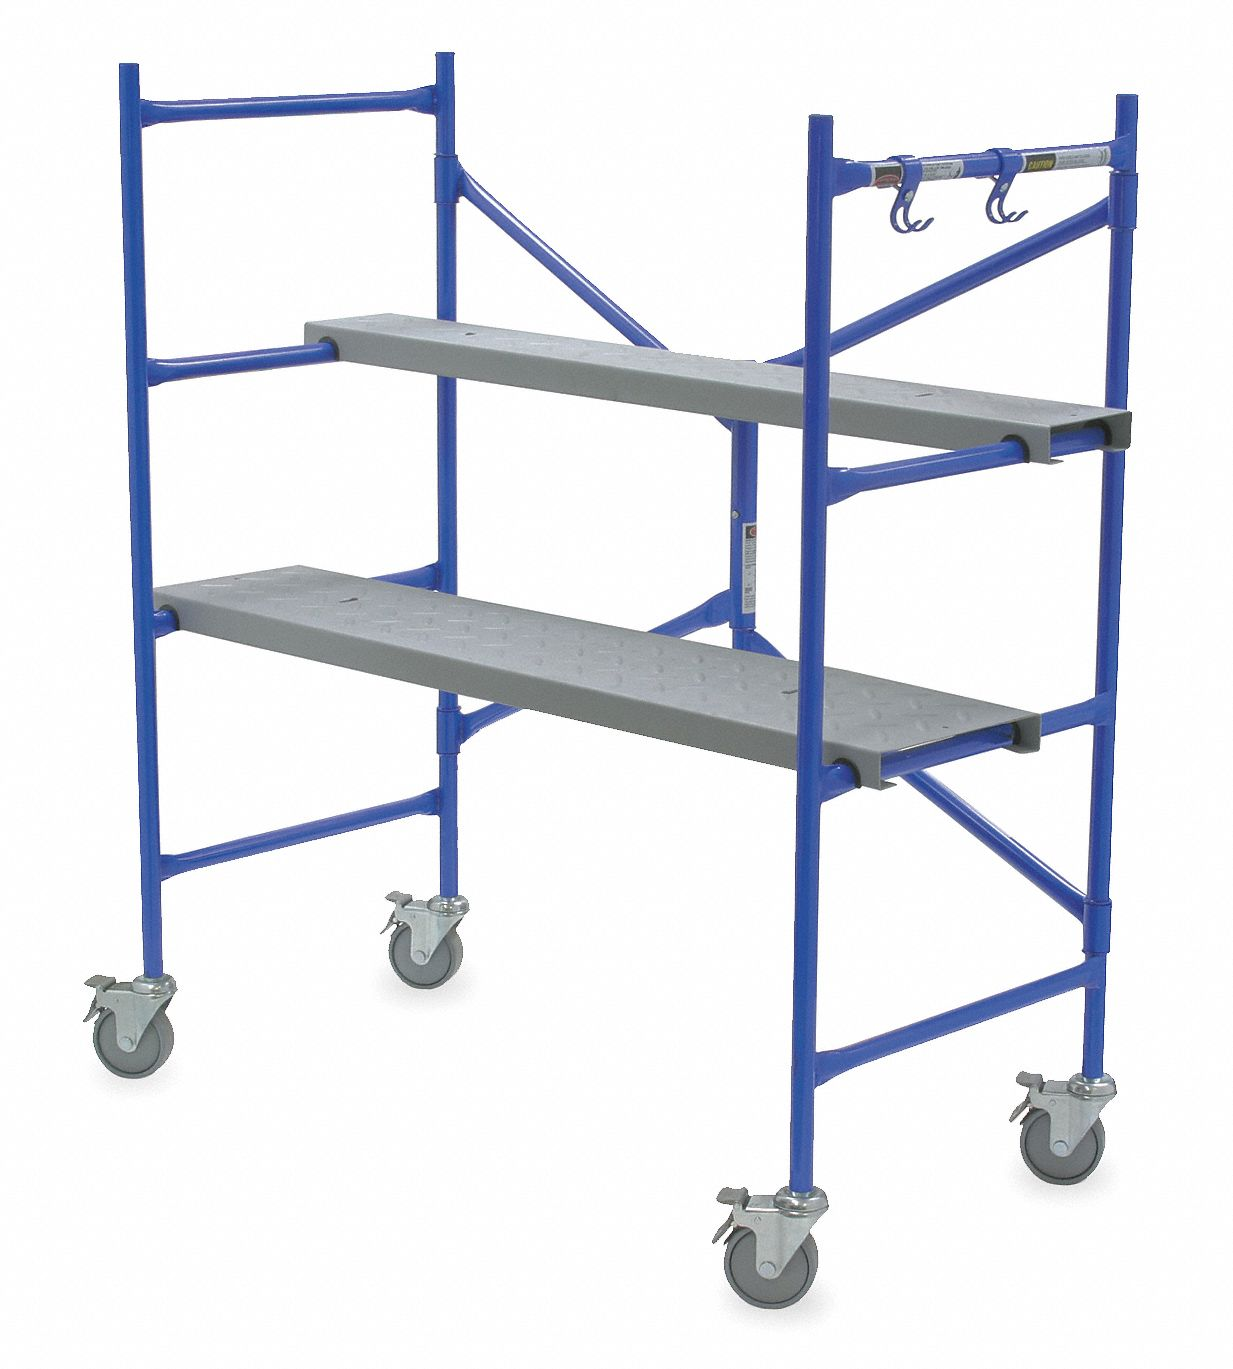 Portable Scaffold, Aluminum, 3 ft 8 in Platform Height, 4 ft Overall Height, 500 lb Load Capacity